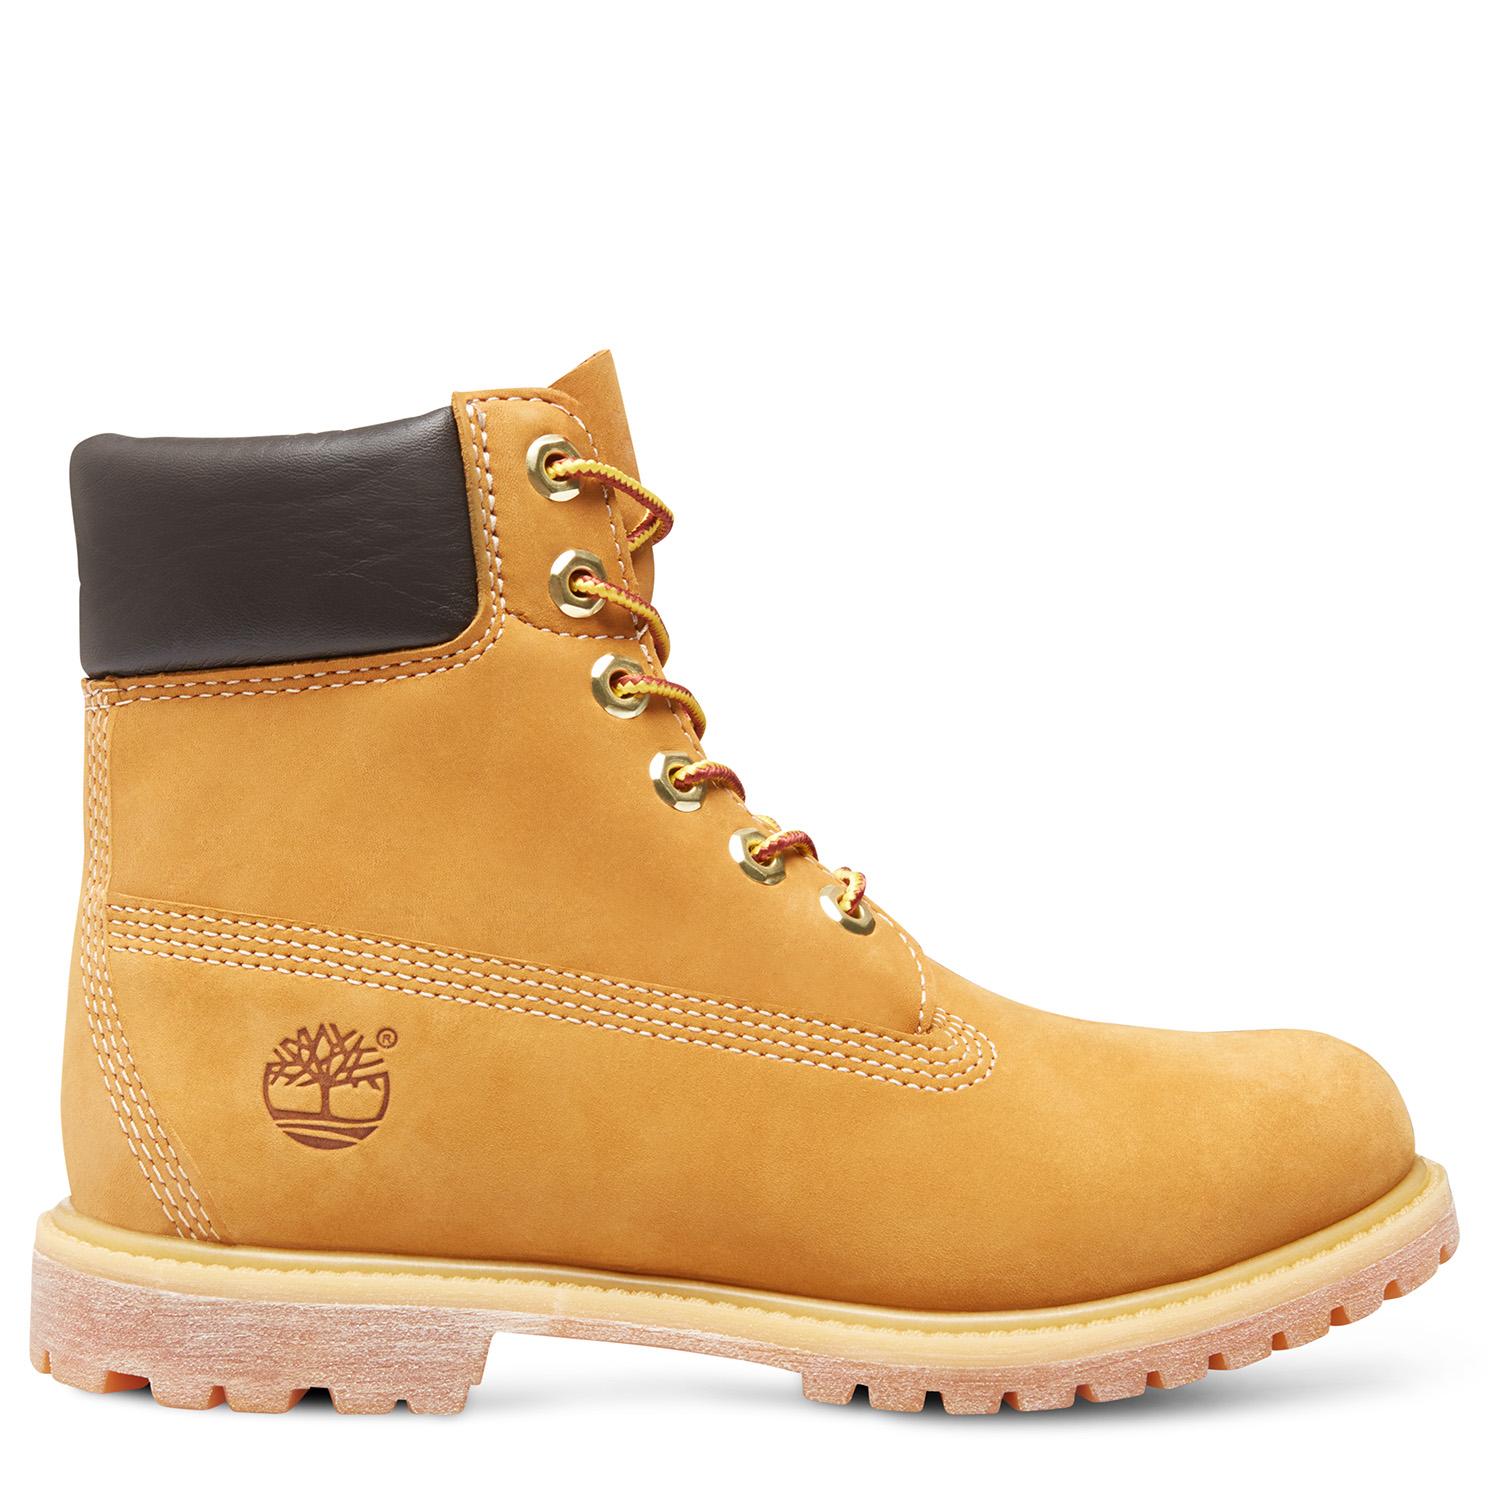 TIMBERLAND |  WOMEN'S ICON 6-INCH PREMIUM BOOT